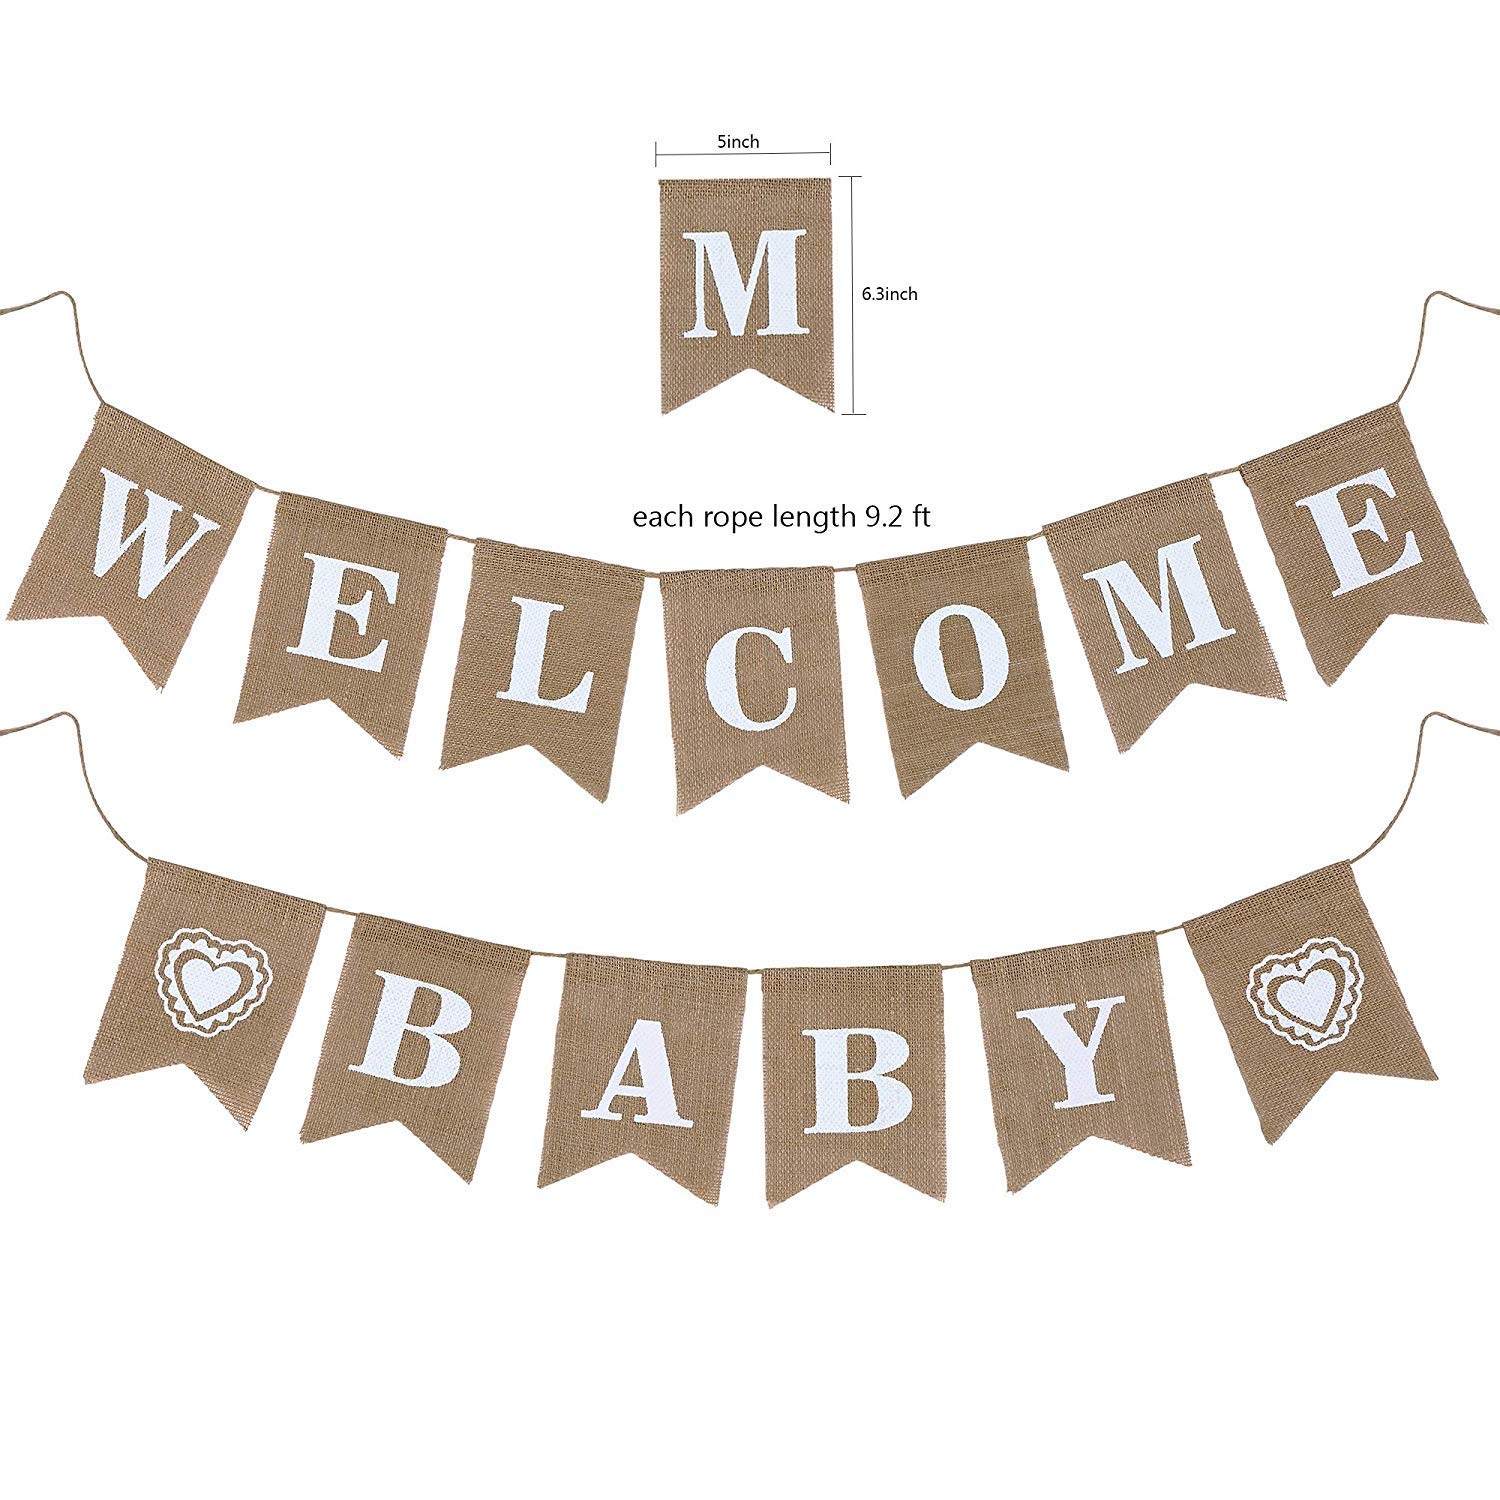 YARA Neutral Baby Shower Decorations for Coed, Unisex, Boy or Girl, Rustic Welcome Baby Banner in Burlap, Tassels, Gold and White Gender Neutral Baby Shower Decor Set, Gold Paper Fans Decorations by Yara Enterprises (Image #5)